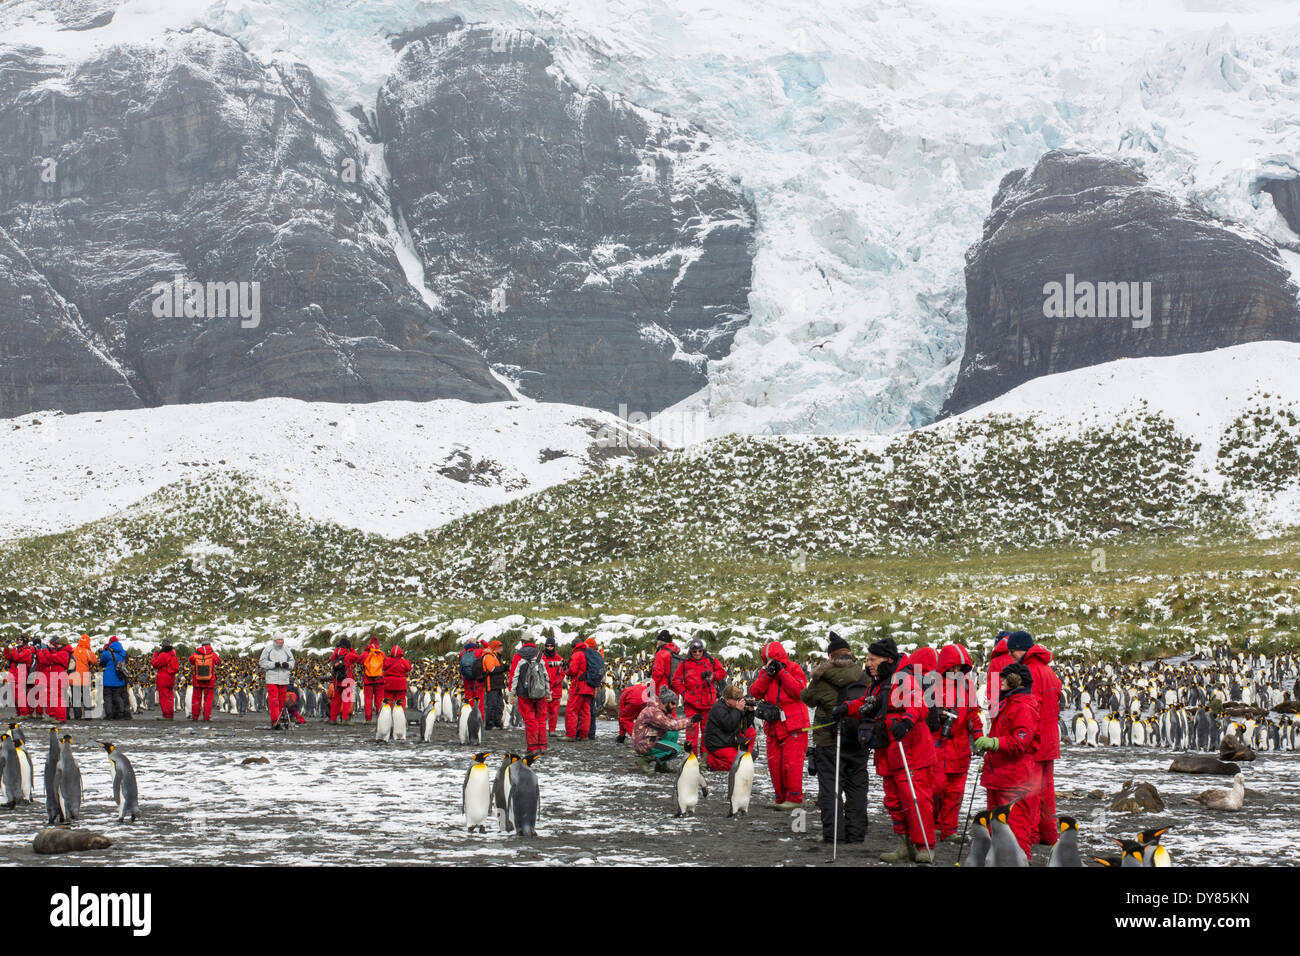 King Penguins at Gold Harbour, South Georgia, with passengers from an expedition cruise and a rapidly retreating glacier - Stock Image